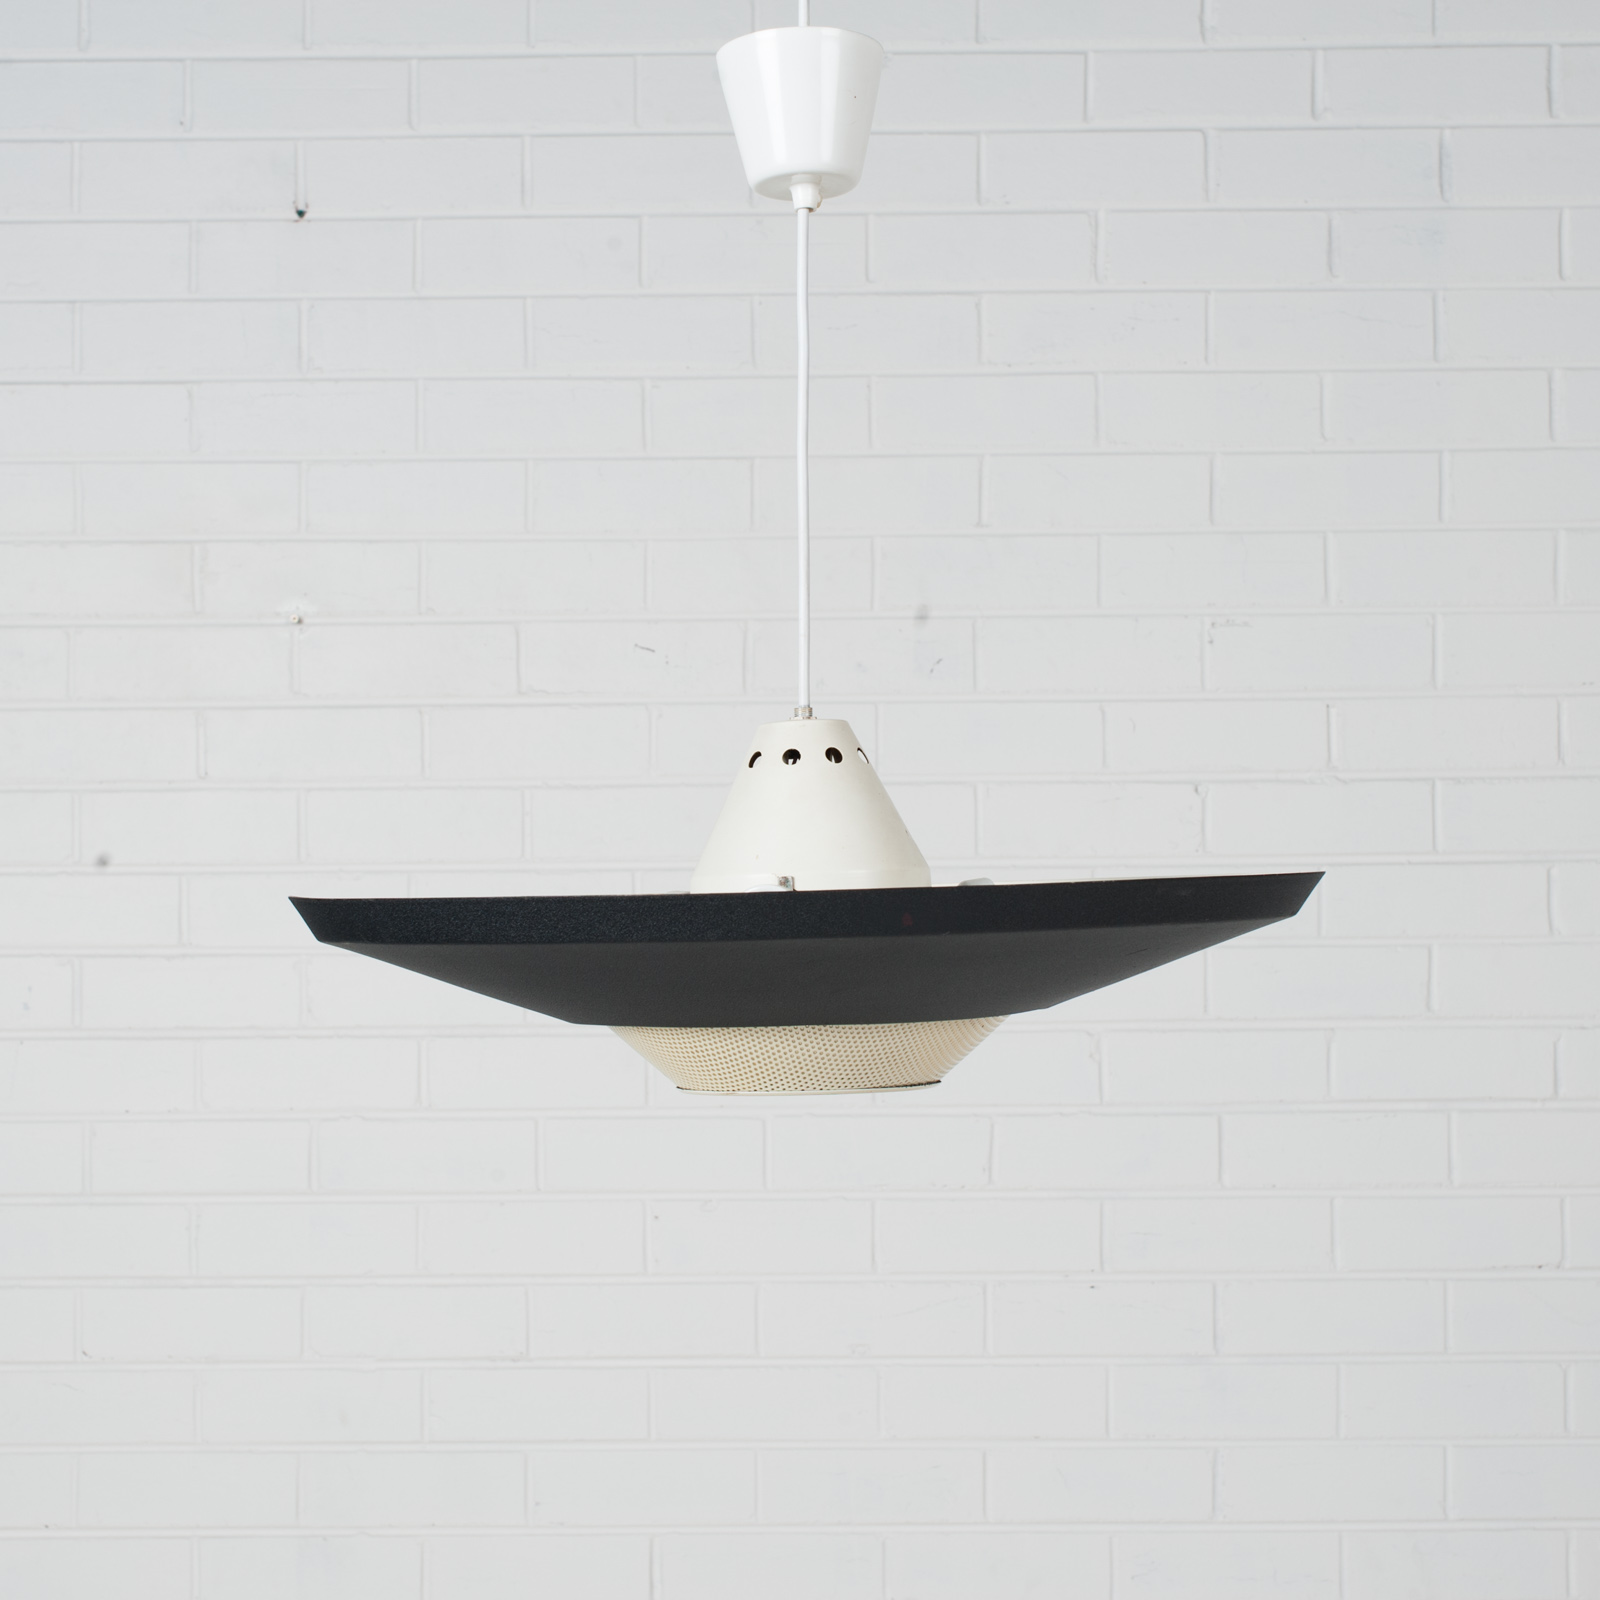 Ceiling Lamp By Louis Kalff For Philips 1960s Netherlands 02